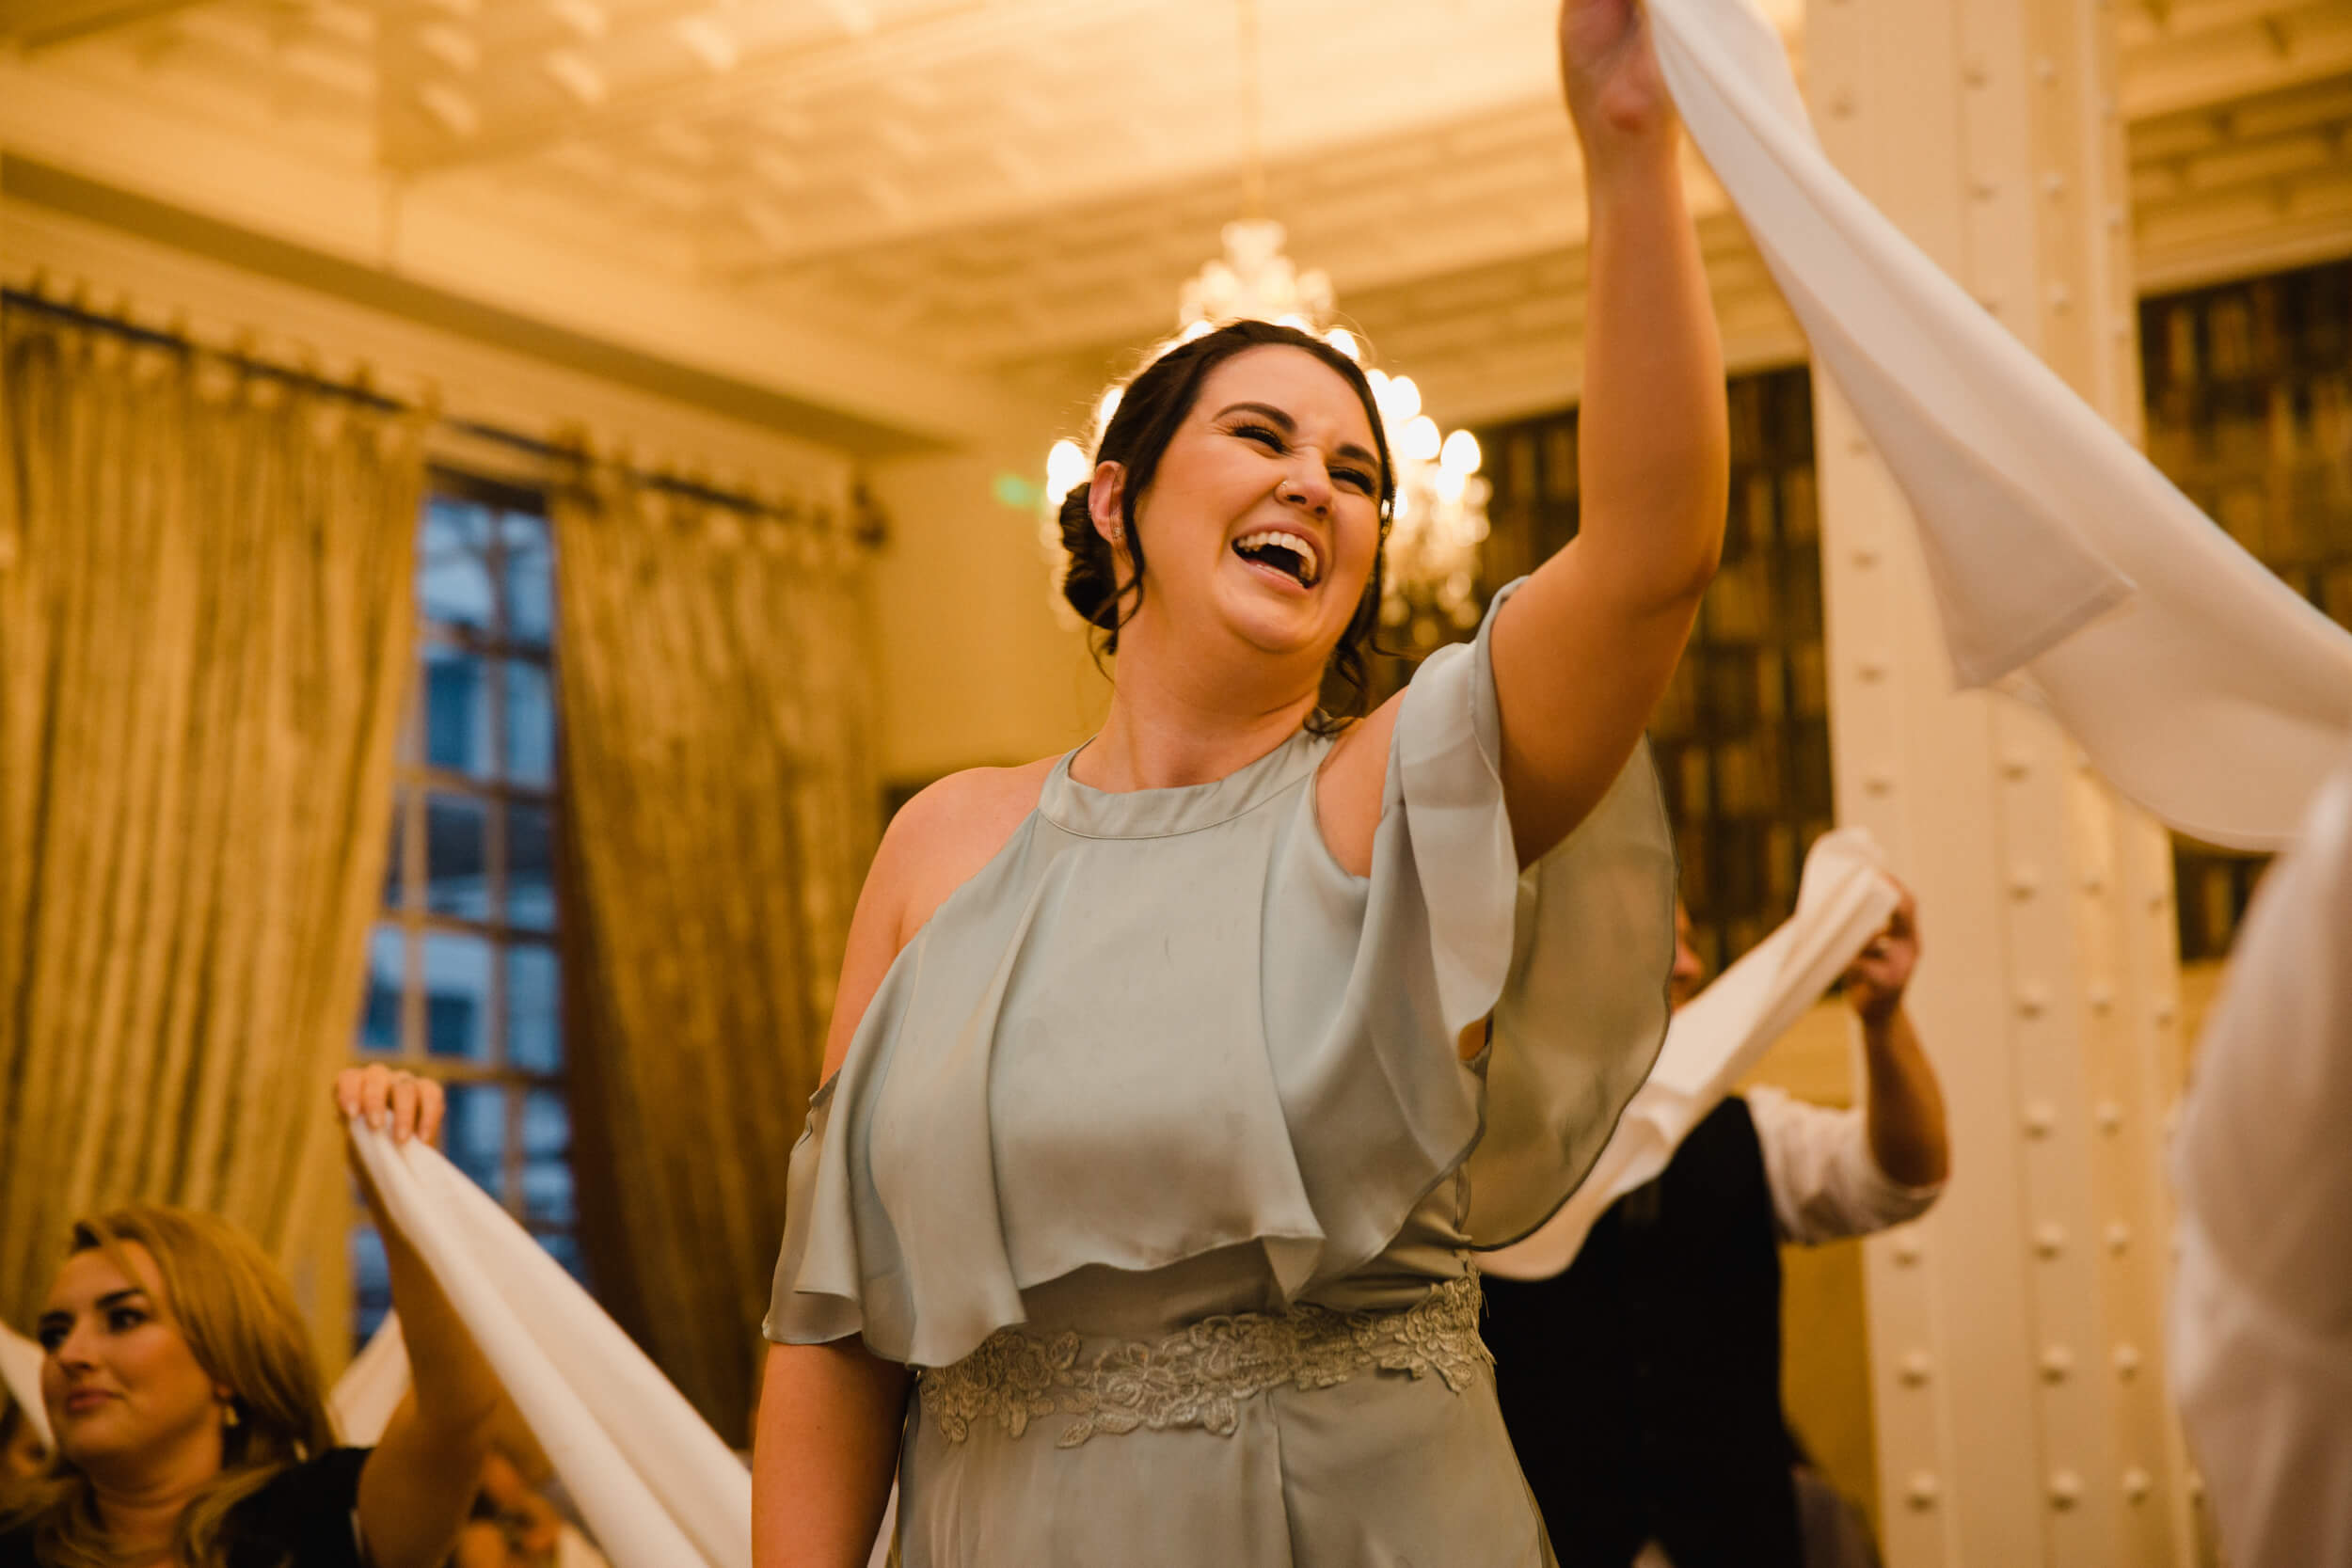 maid of honour waving napkin in the air while laughing